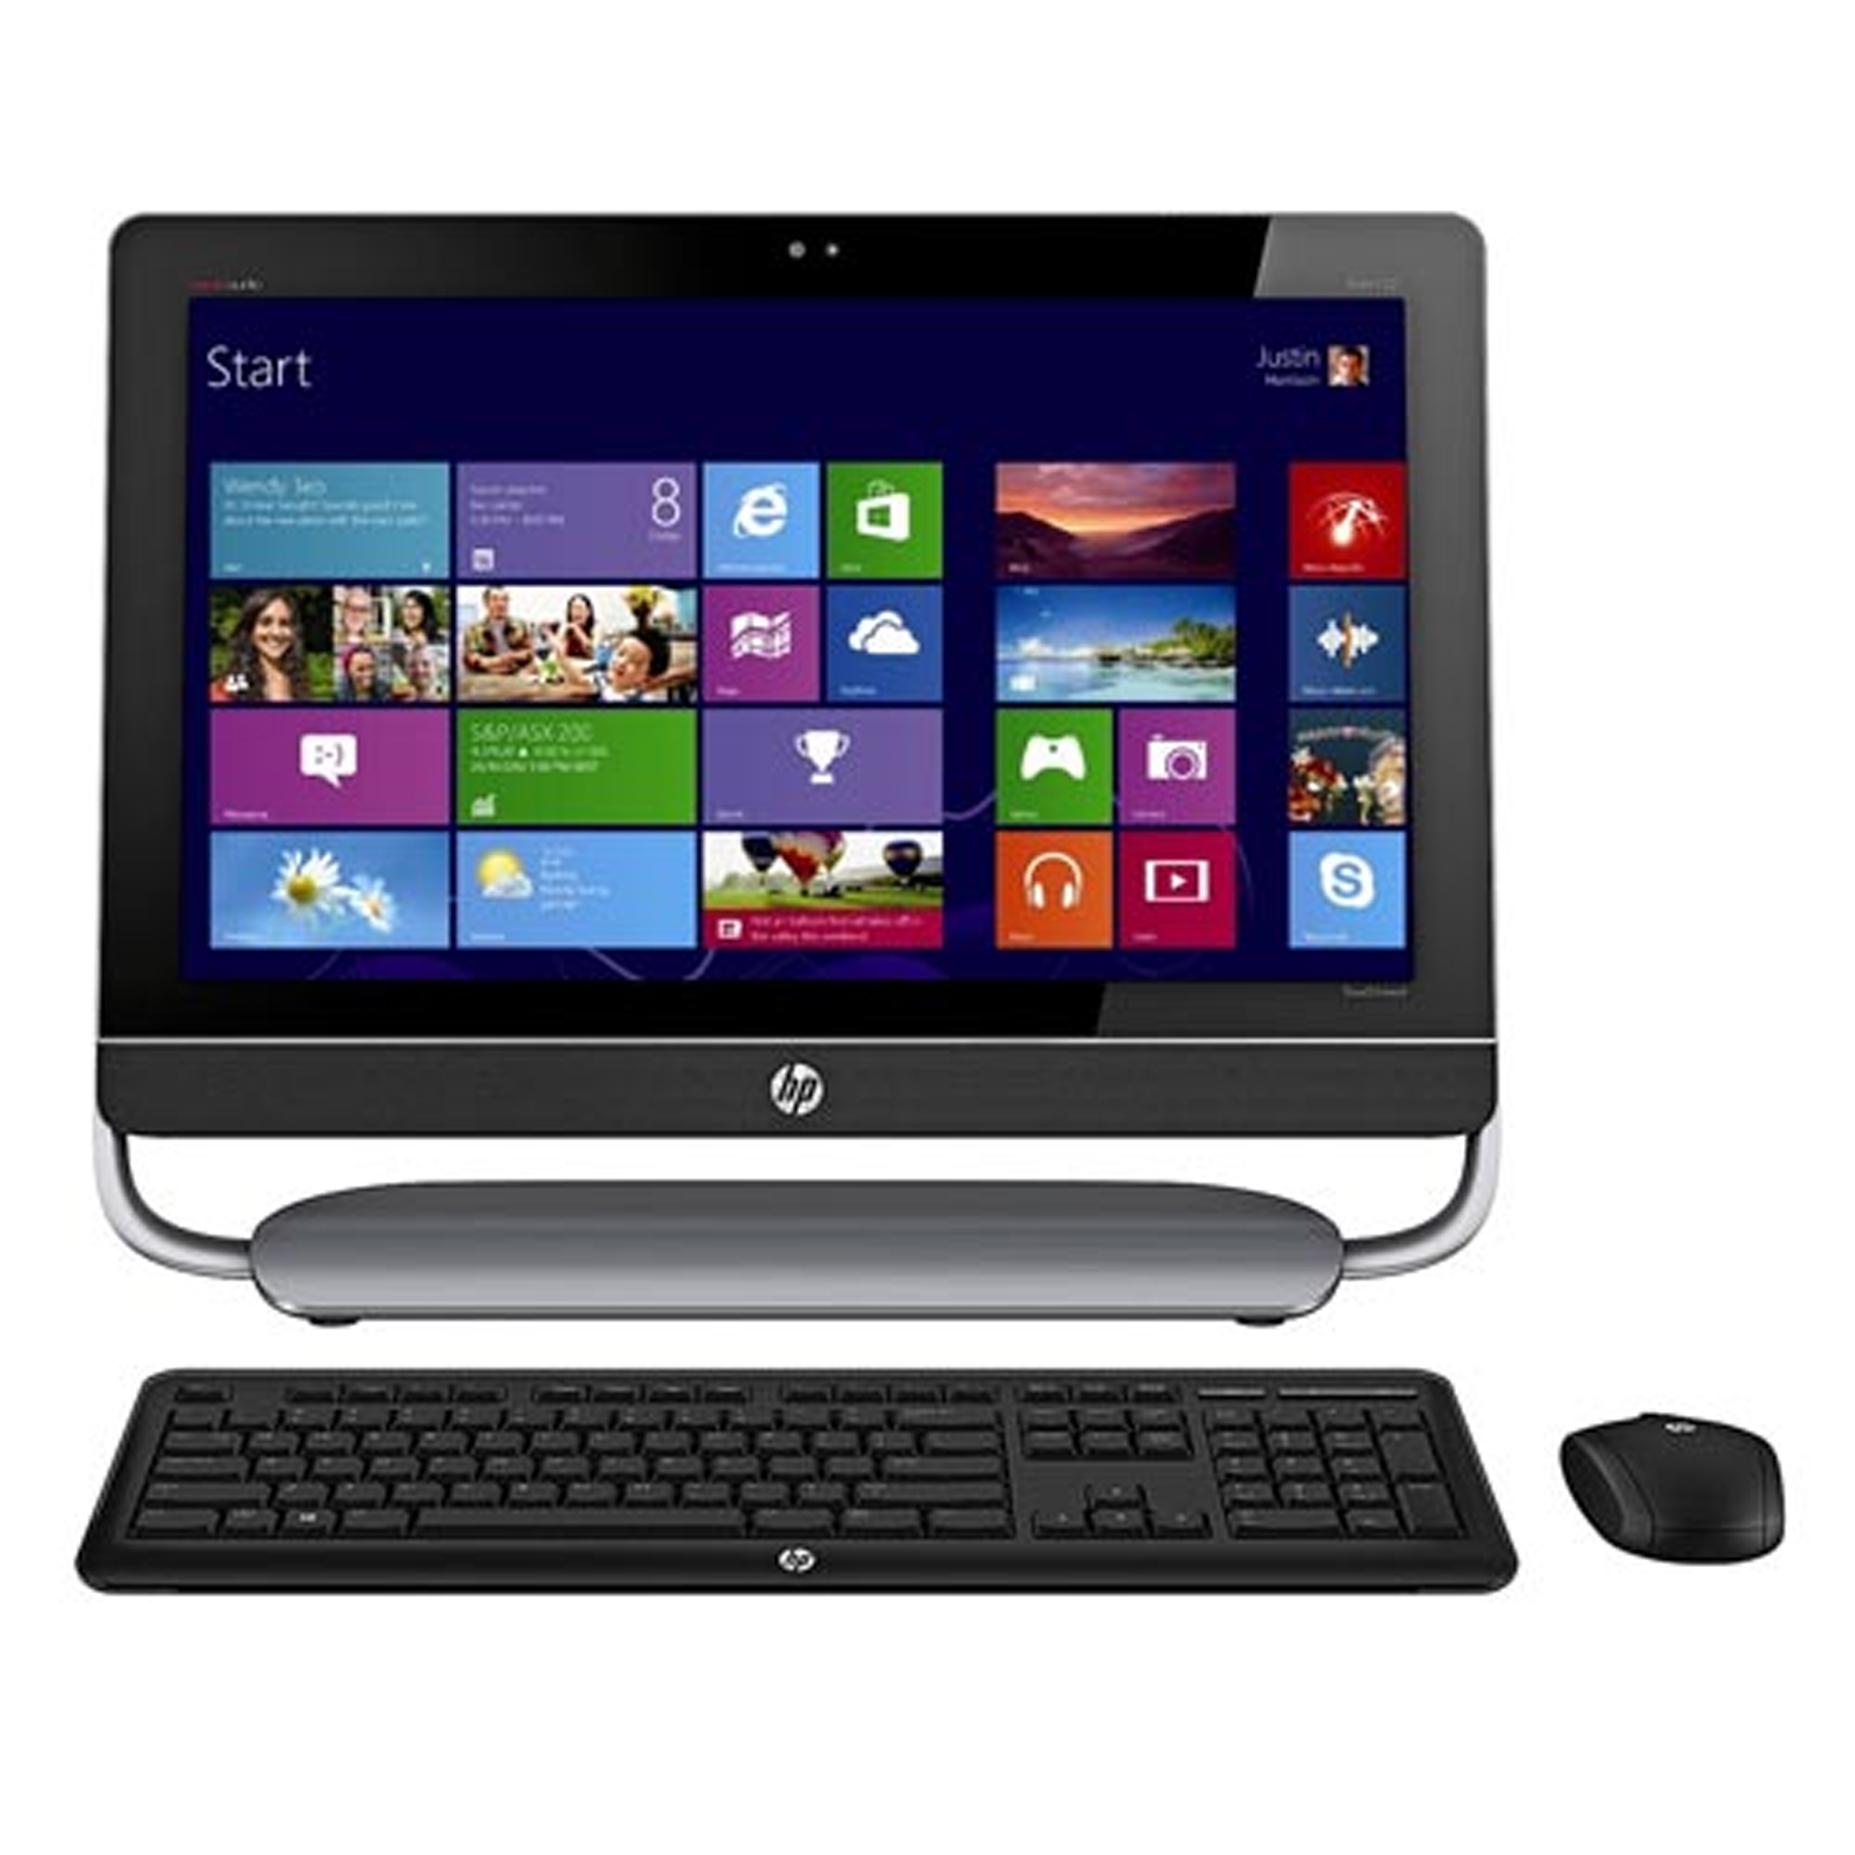 Jaul Harga HP Envy 23 D040D TouchSmart All In One